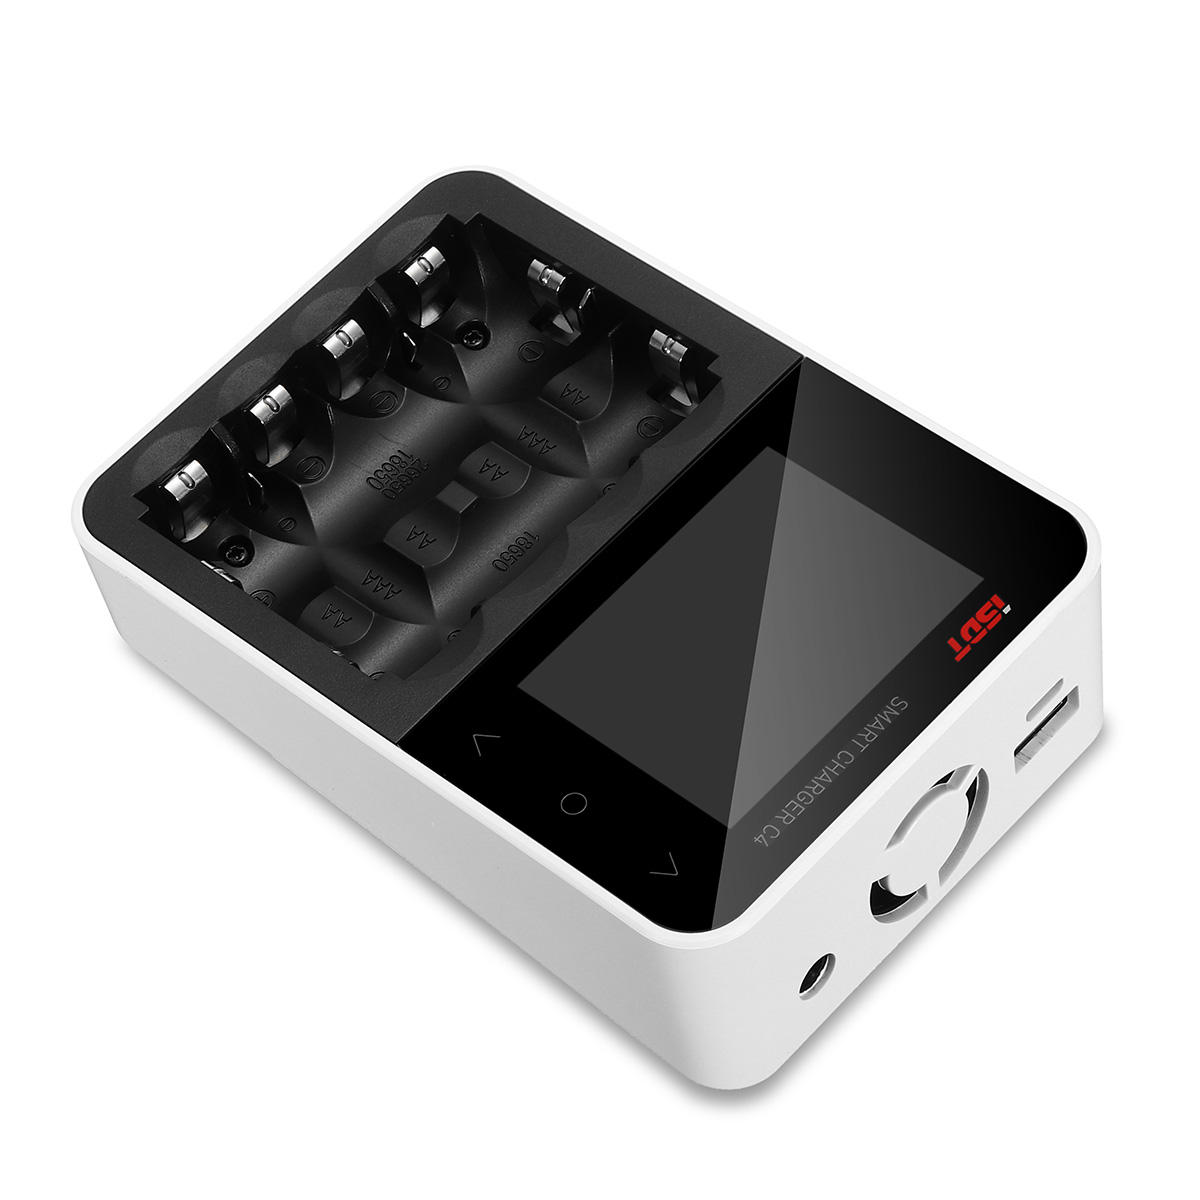 ISDT C4 8A Touch Screen Smart Battery Charger With USB Output For 18650 26650 AA AAA Battery - 8